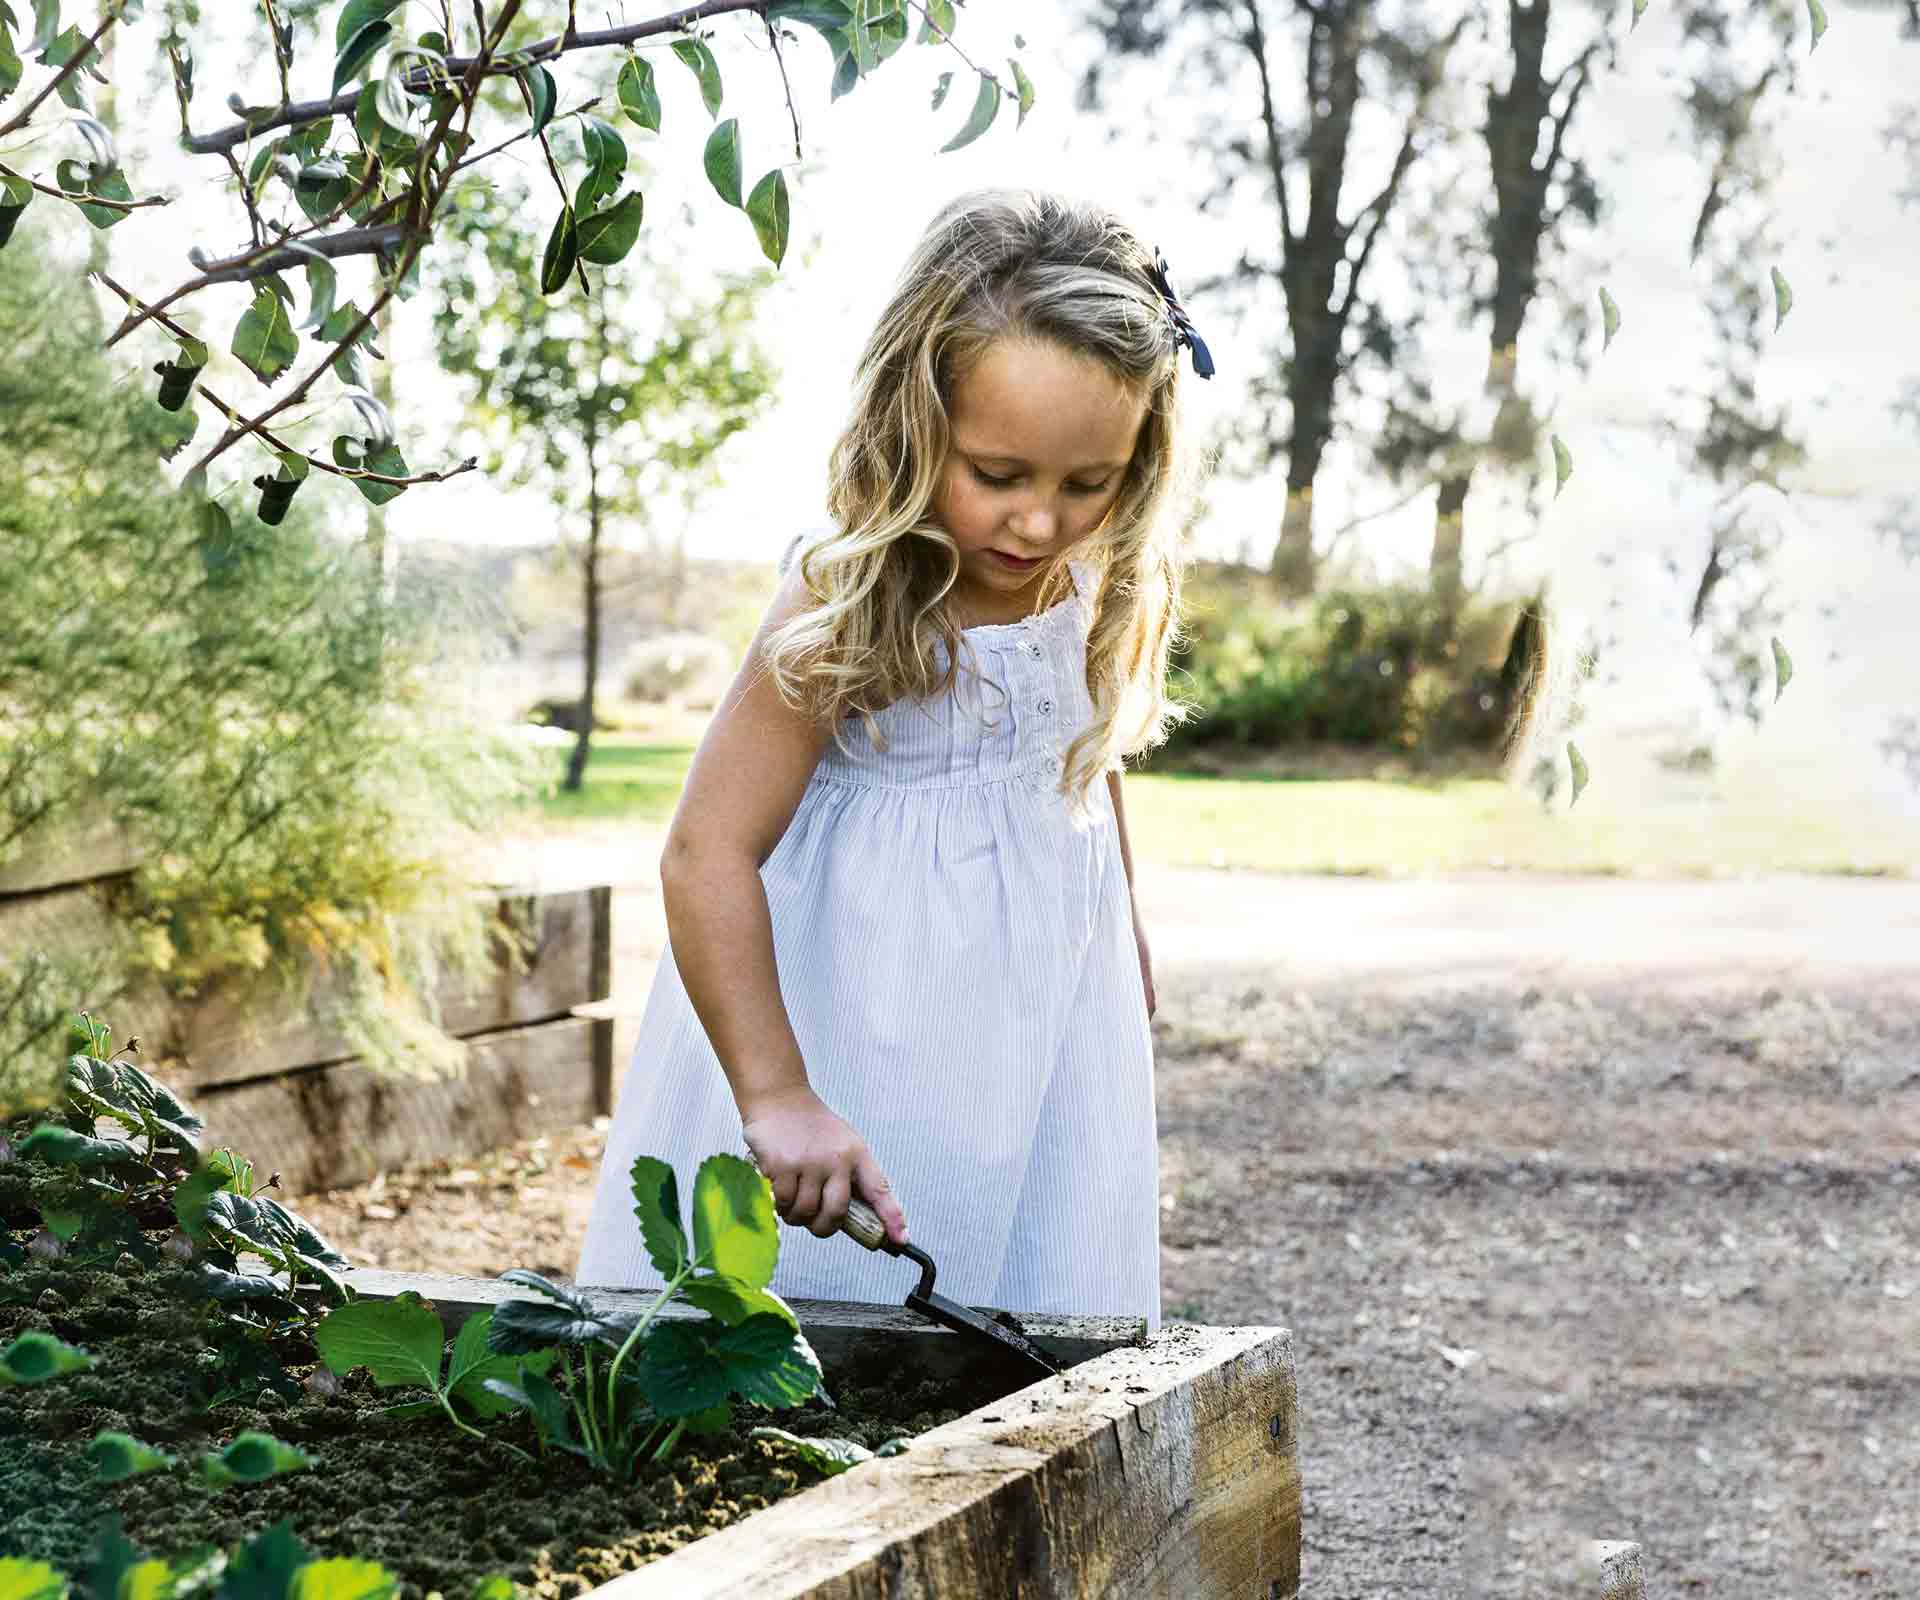 Starting a vegetable garden for kids with 4 easy-to-grow vegies